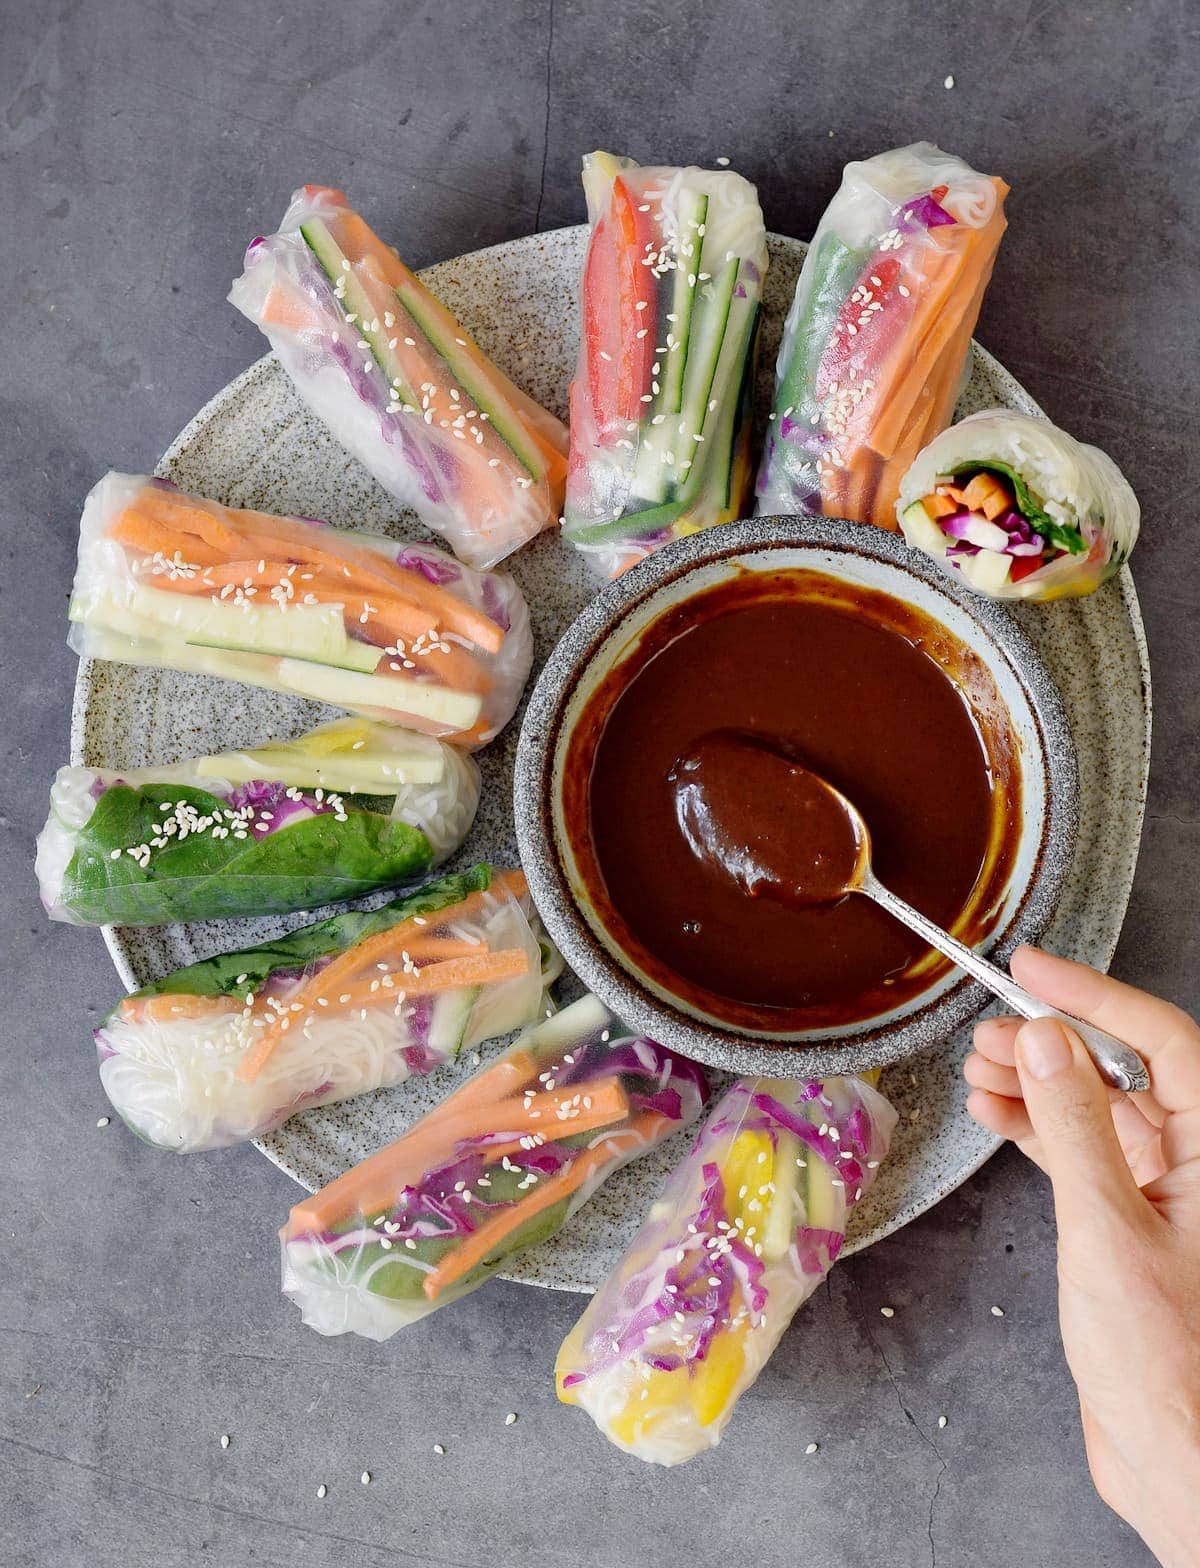 hand holds spoon submerged in hoisin sauce on a platter with summer rolls